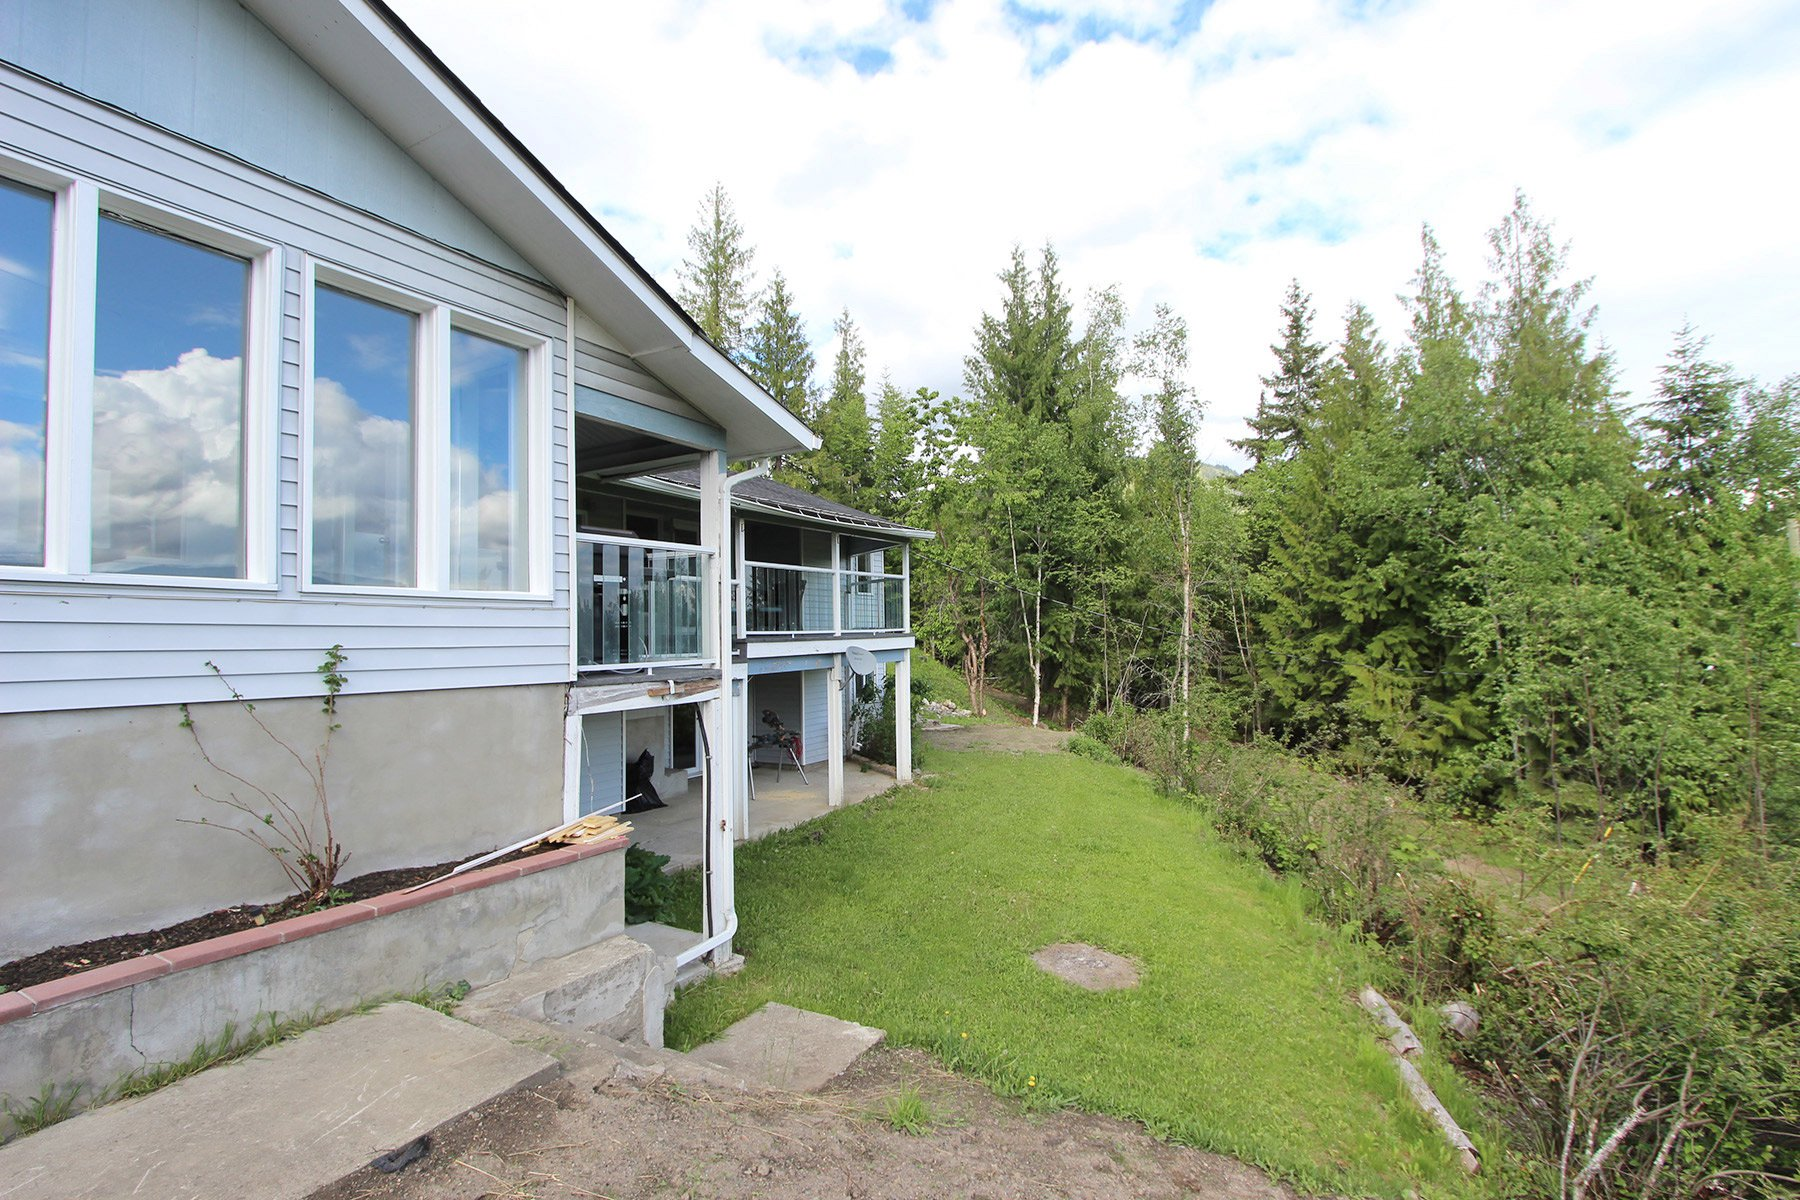 Photo 15: Photos: 6831 Magna Bay Drive in Magna Bay: House with Acreage for sale : MLS®# 10205520